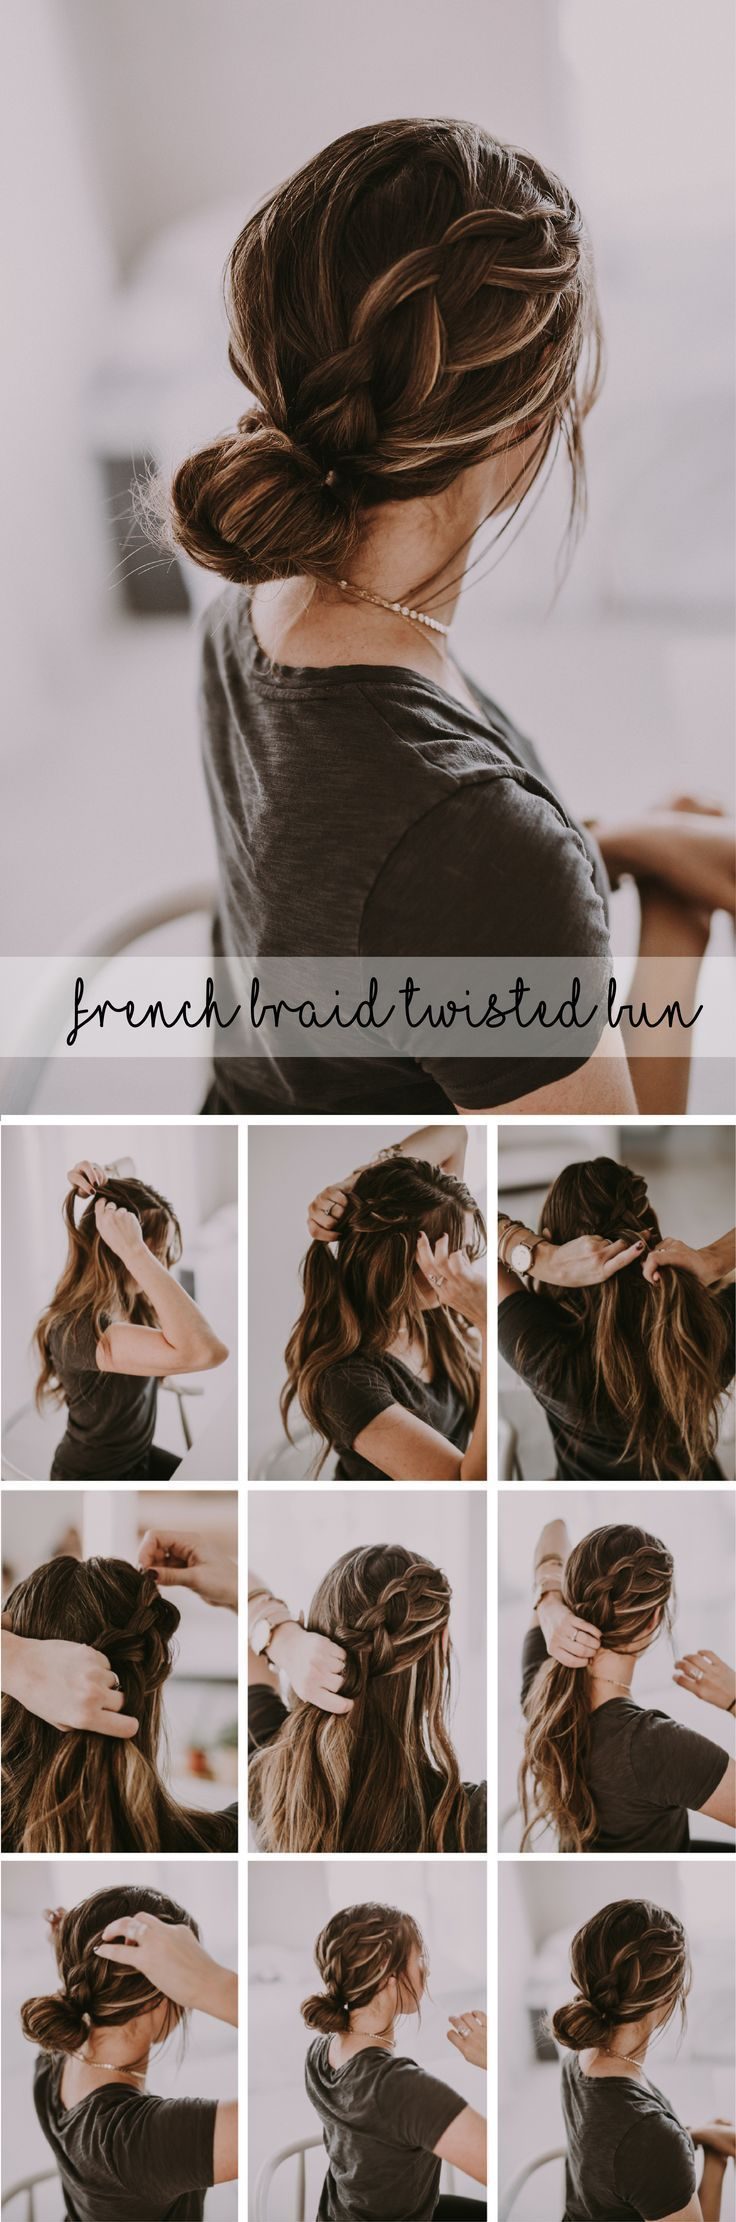 how to make french hairstyle